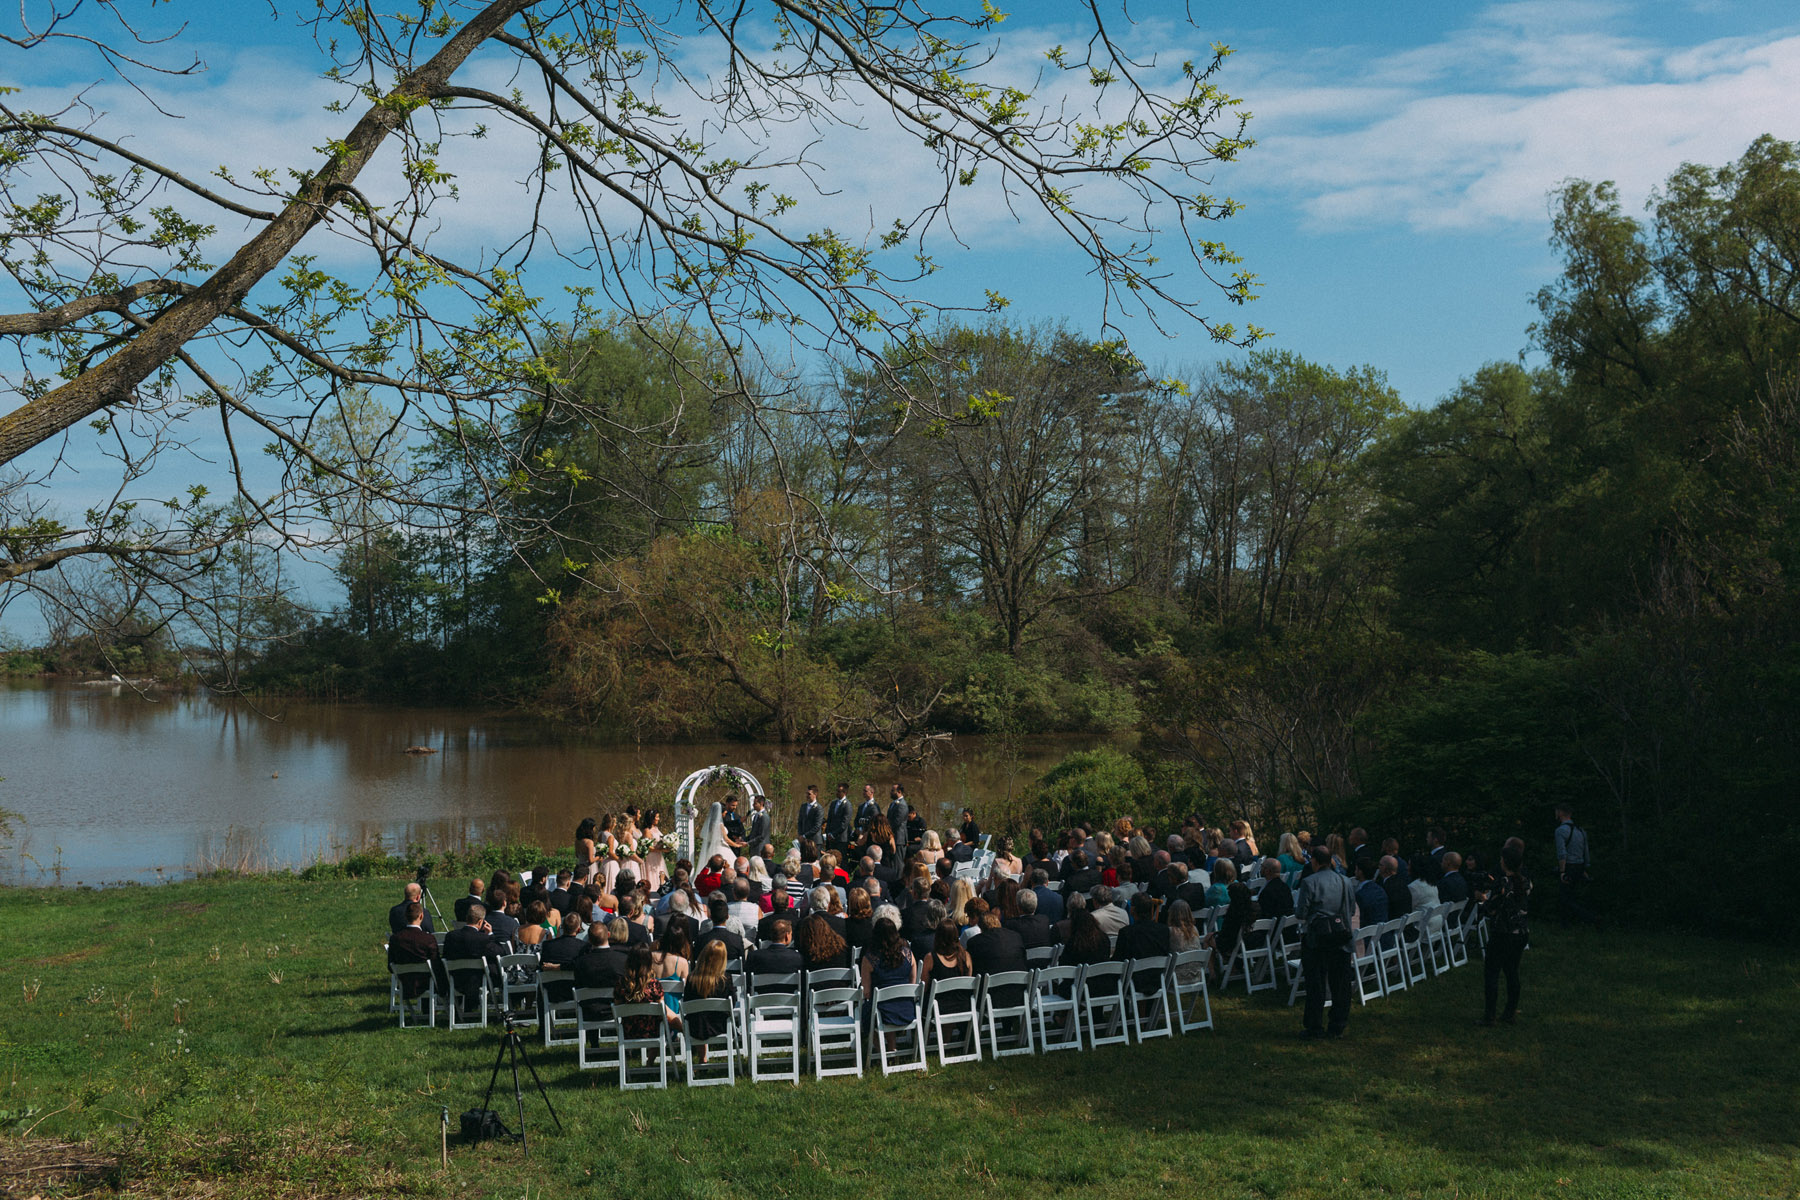 Harding-Waterfront-Estate-Mississauga-wedding-photography-by-Sam-Wong-of-Artanis-Collective_26.jpg